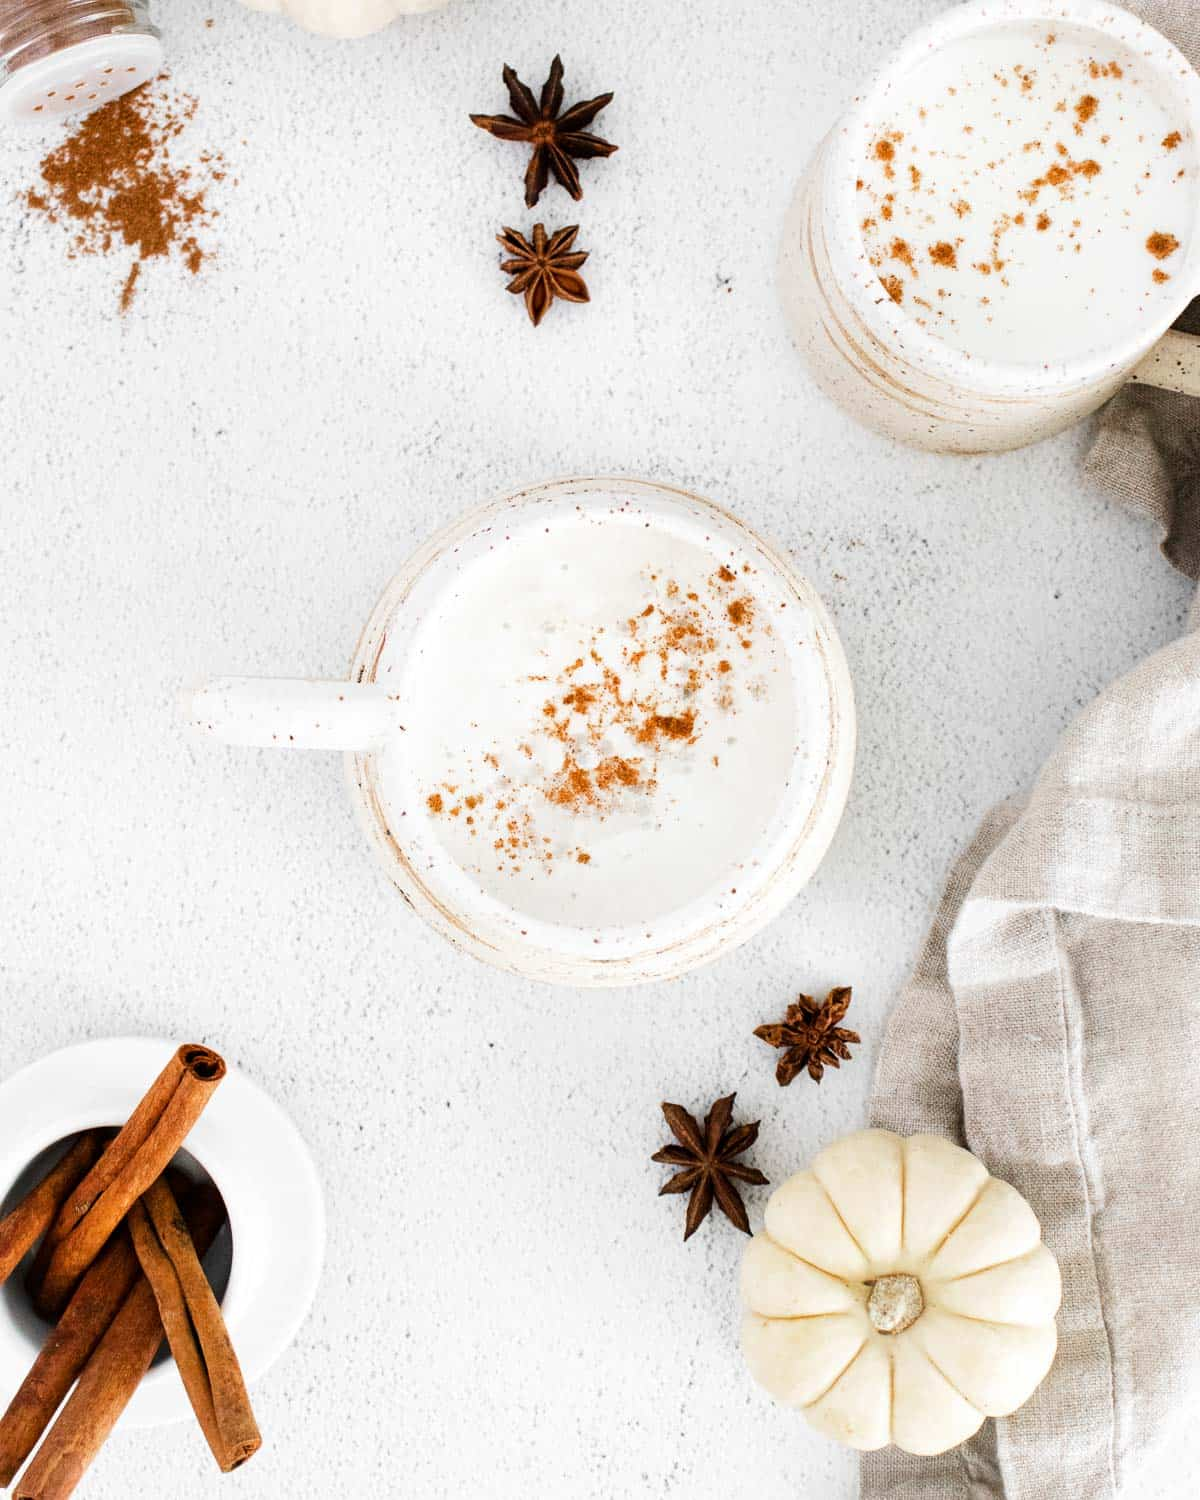 Overhead view of lattes, whole spices, and white pumpkins.